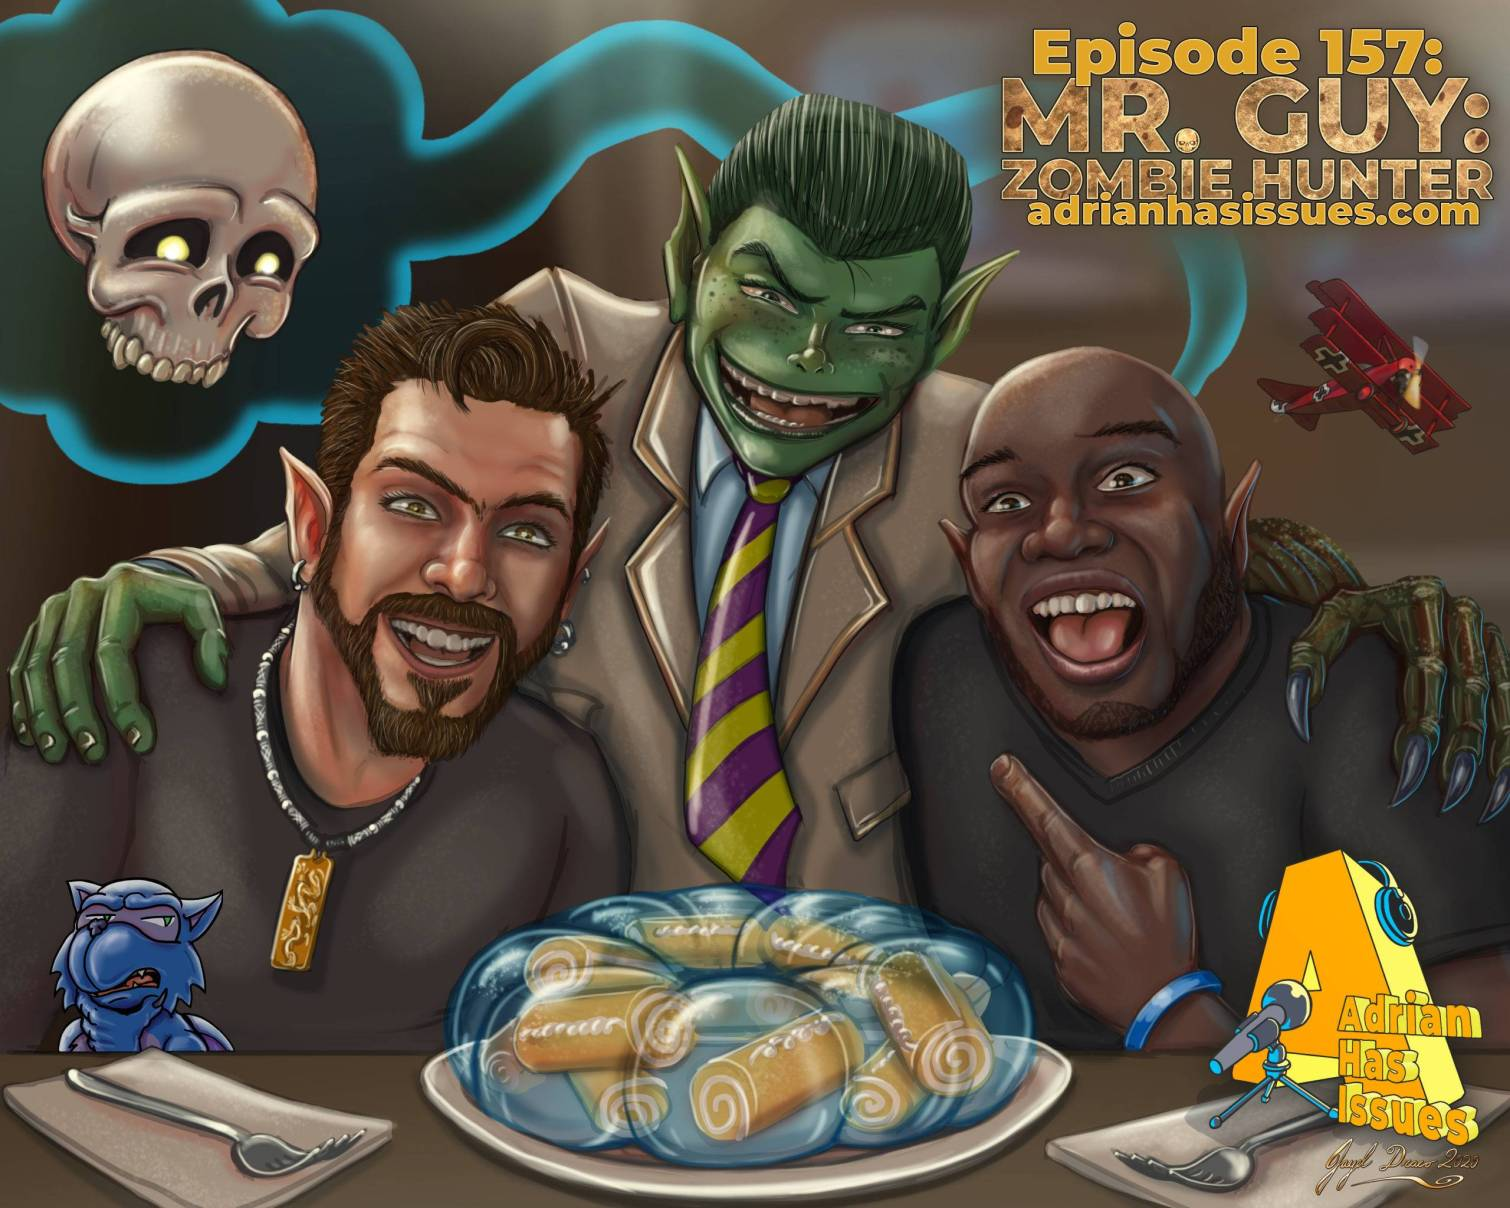 Adrian Has Issues Podcast Episode Number 157